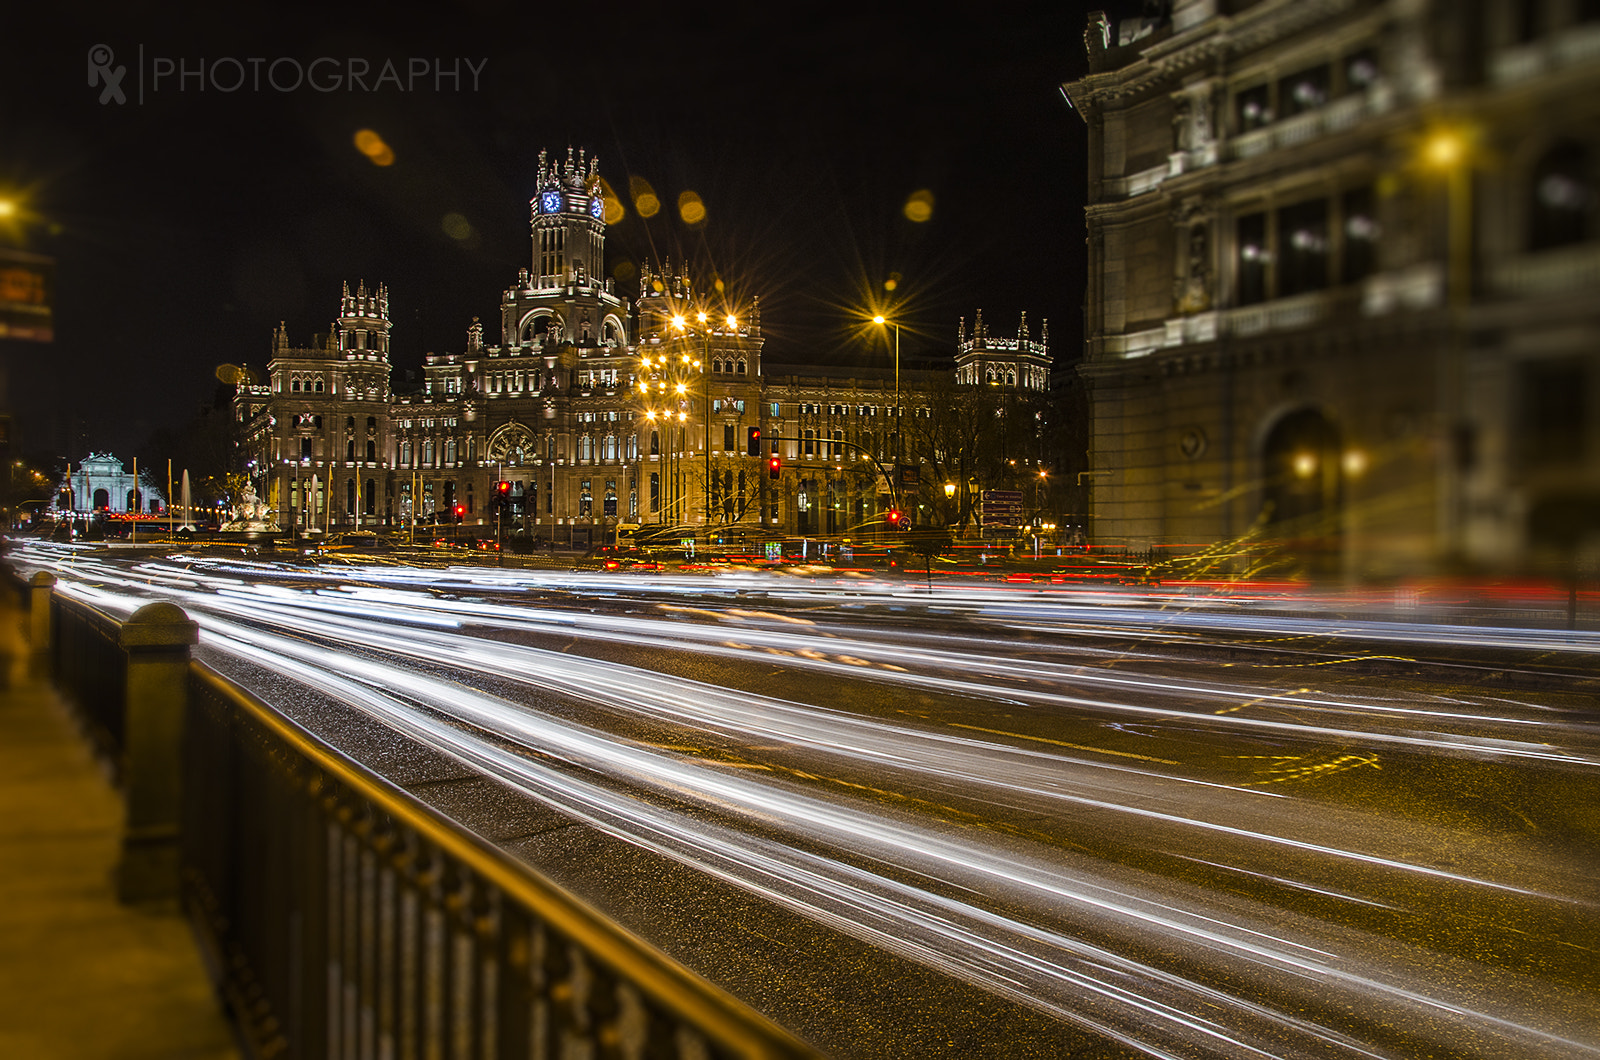 Photograph White Lines (Gran Vía Madrid) by Rui Xu on 500px